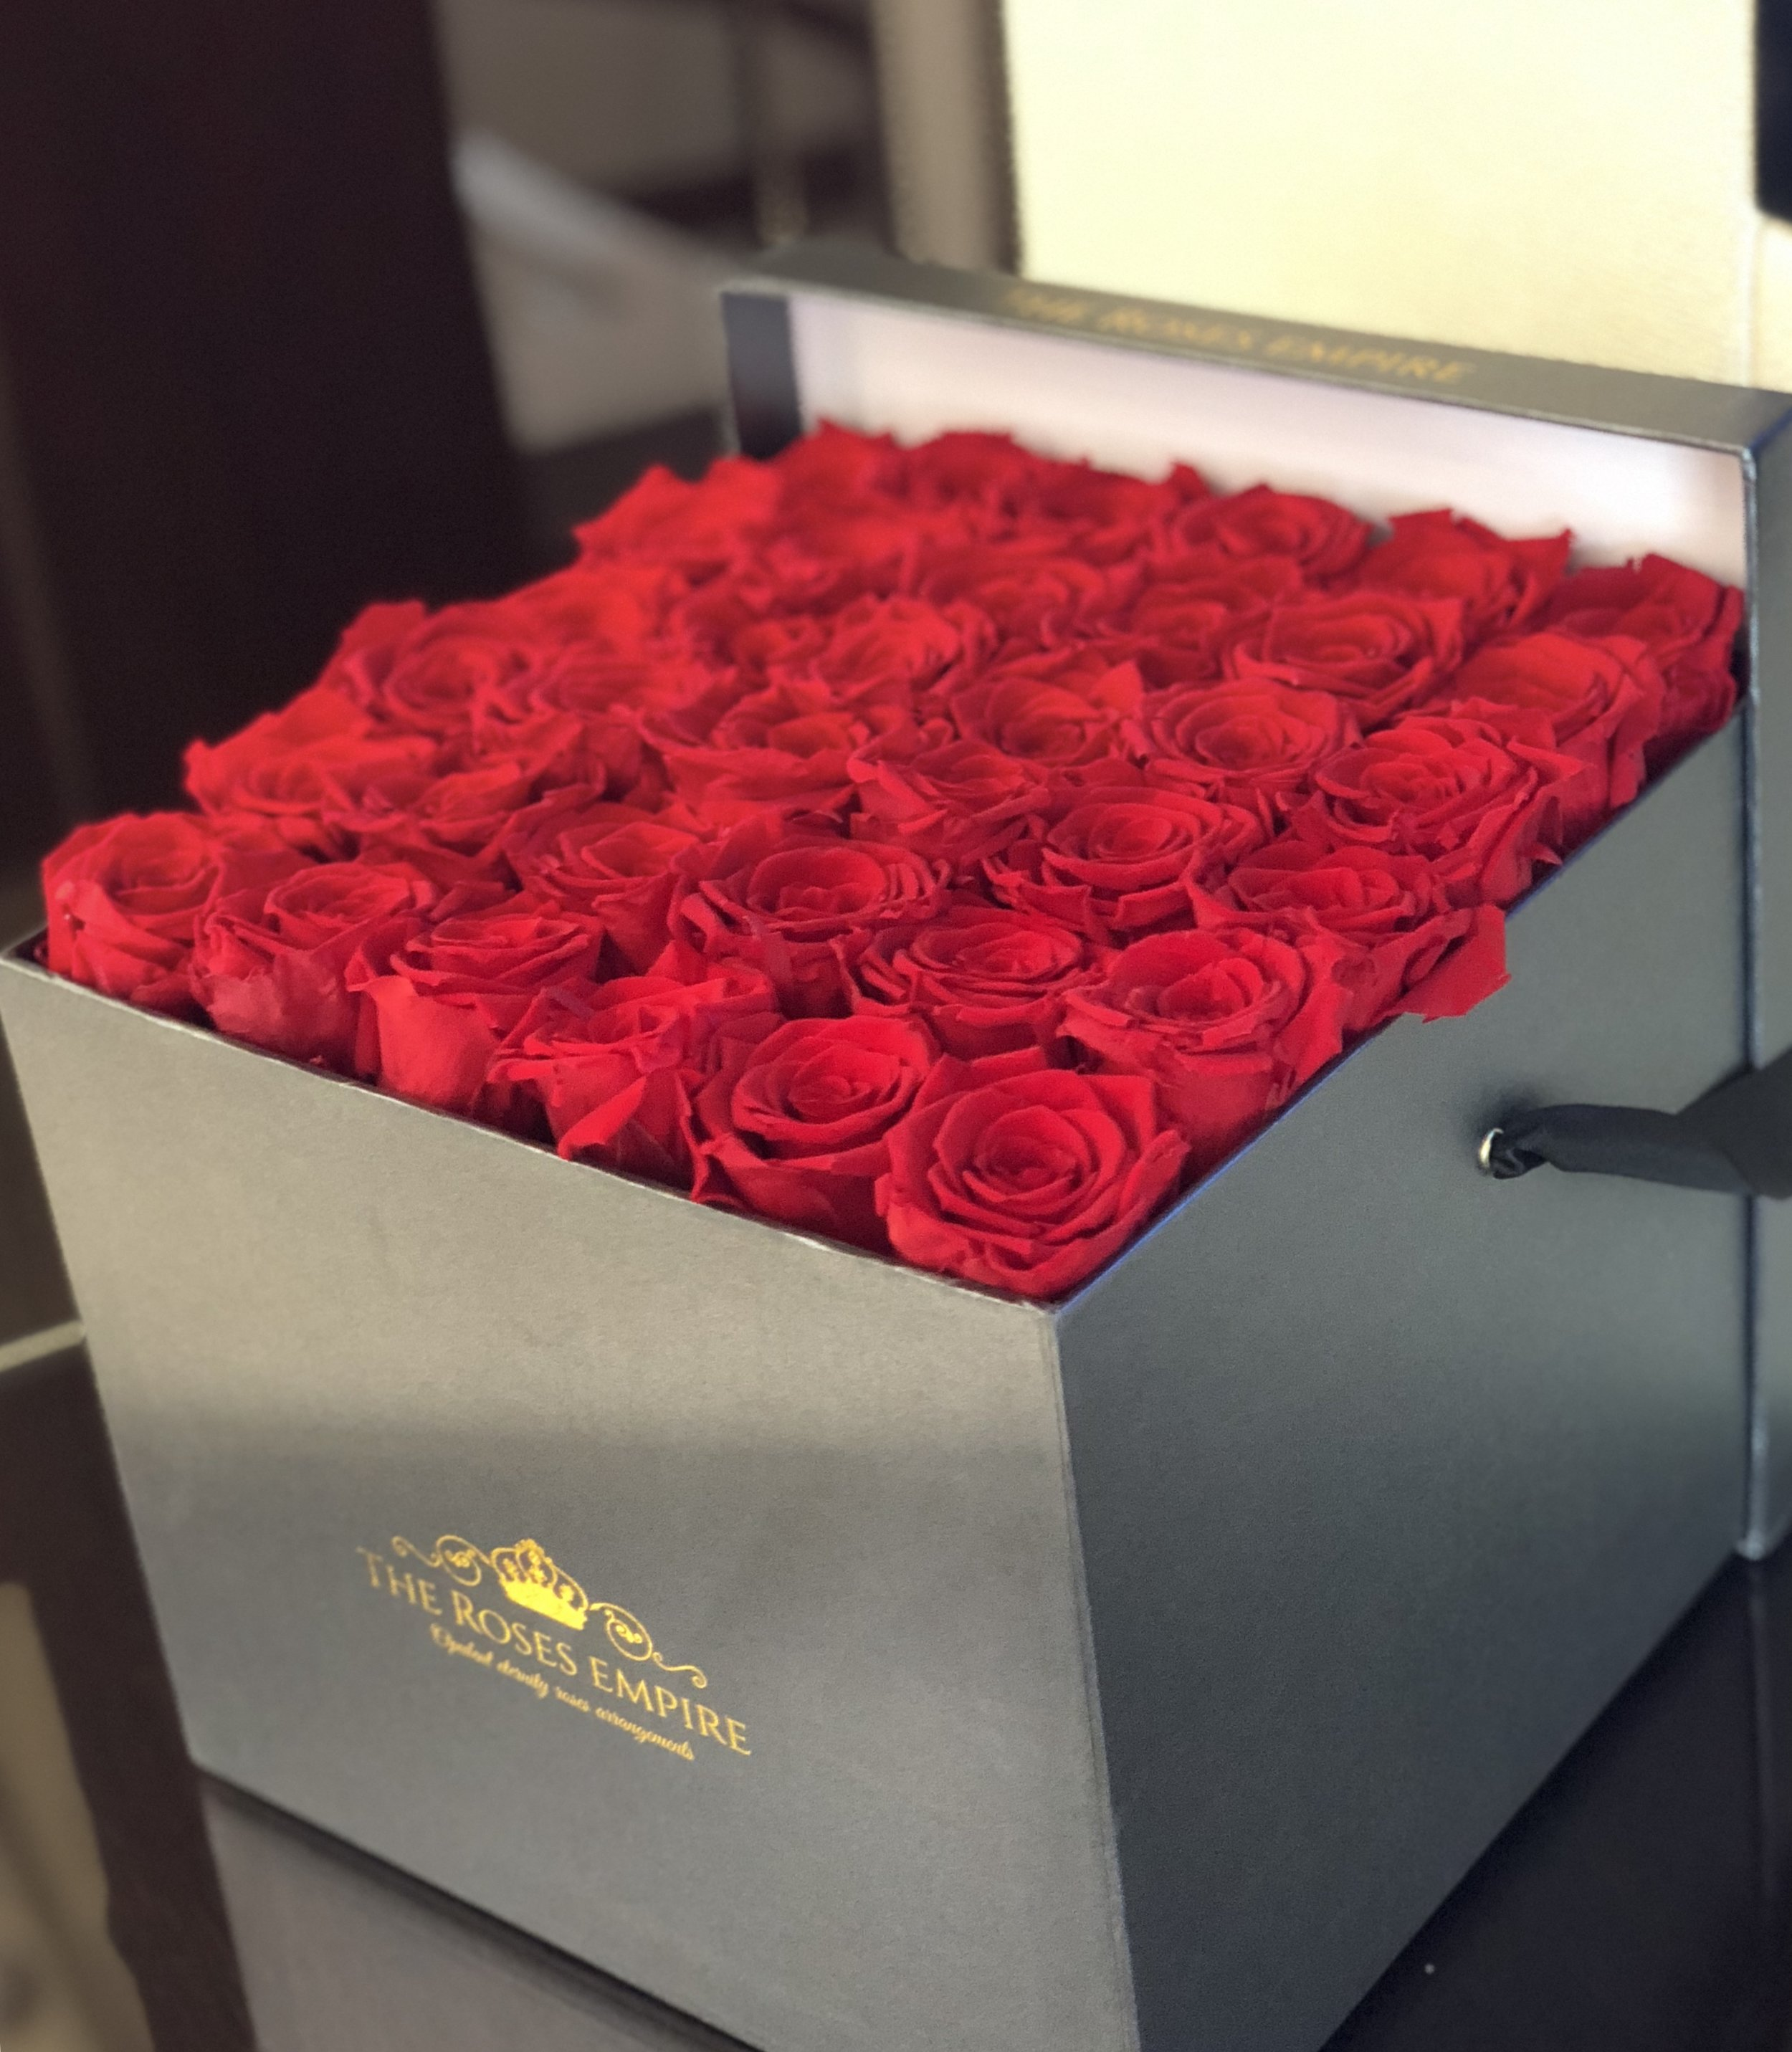 Deluxe Eternal roses for your needs - Eternal roses are perfect for yachtsand villas. They are long lastingtherefore likely to last youall season without the need to changeflowers weekly.They do not need any maintenancewhich is always a luxury, apart fromoccasional dusting!